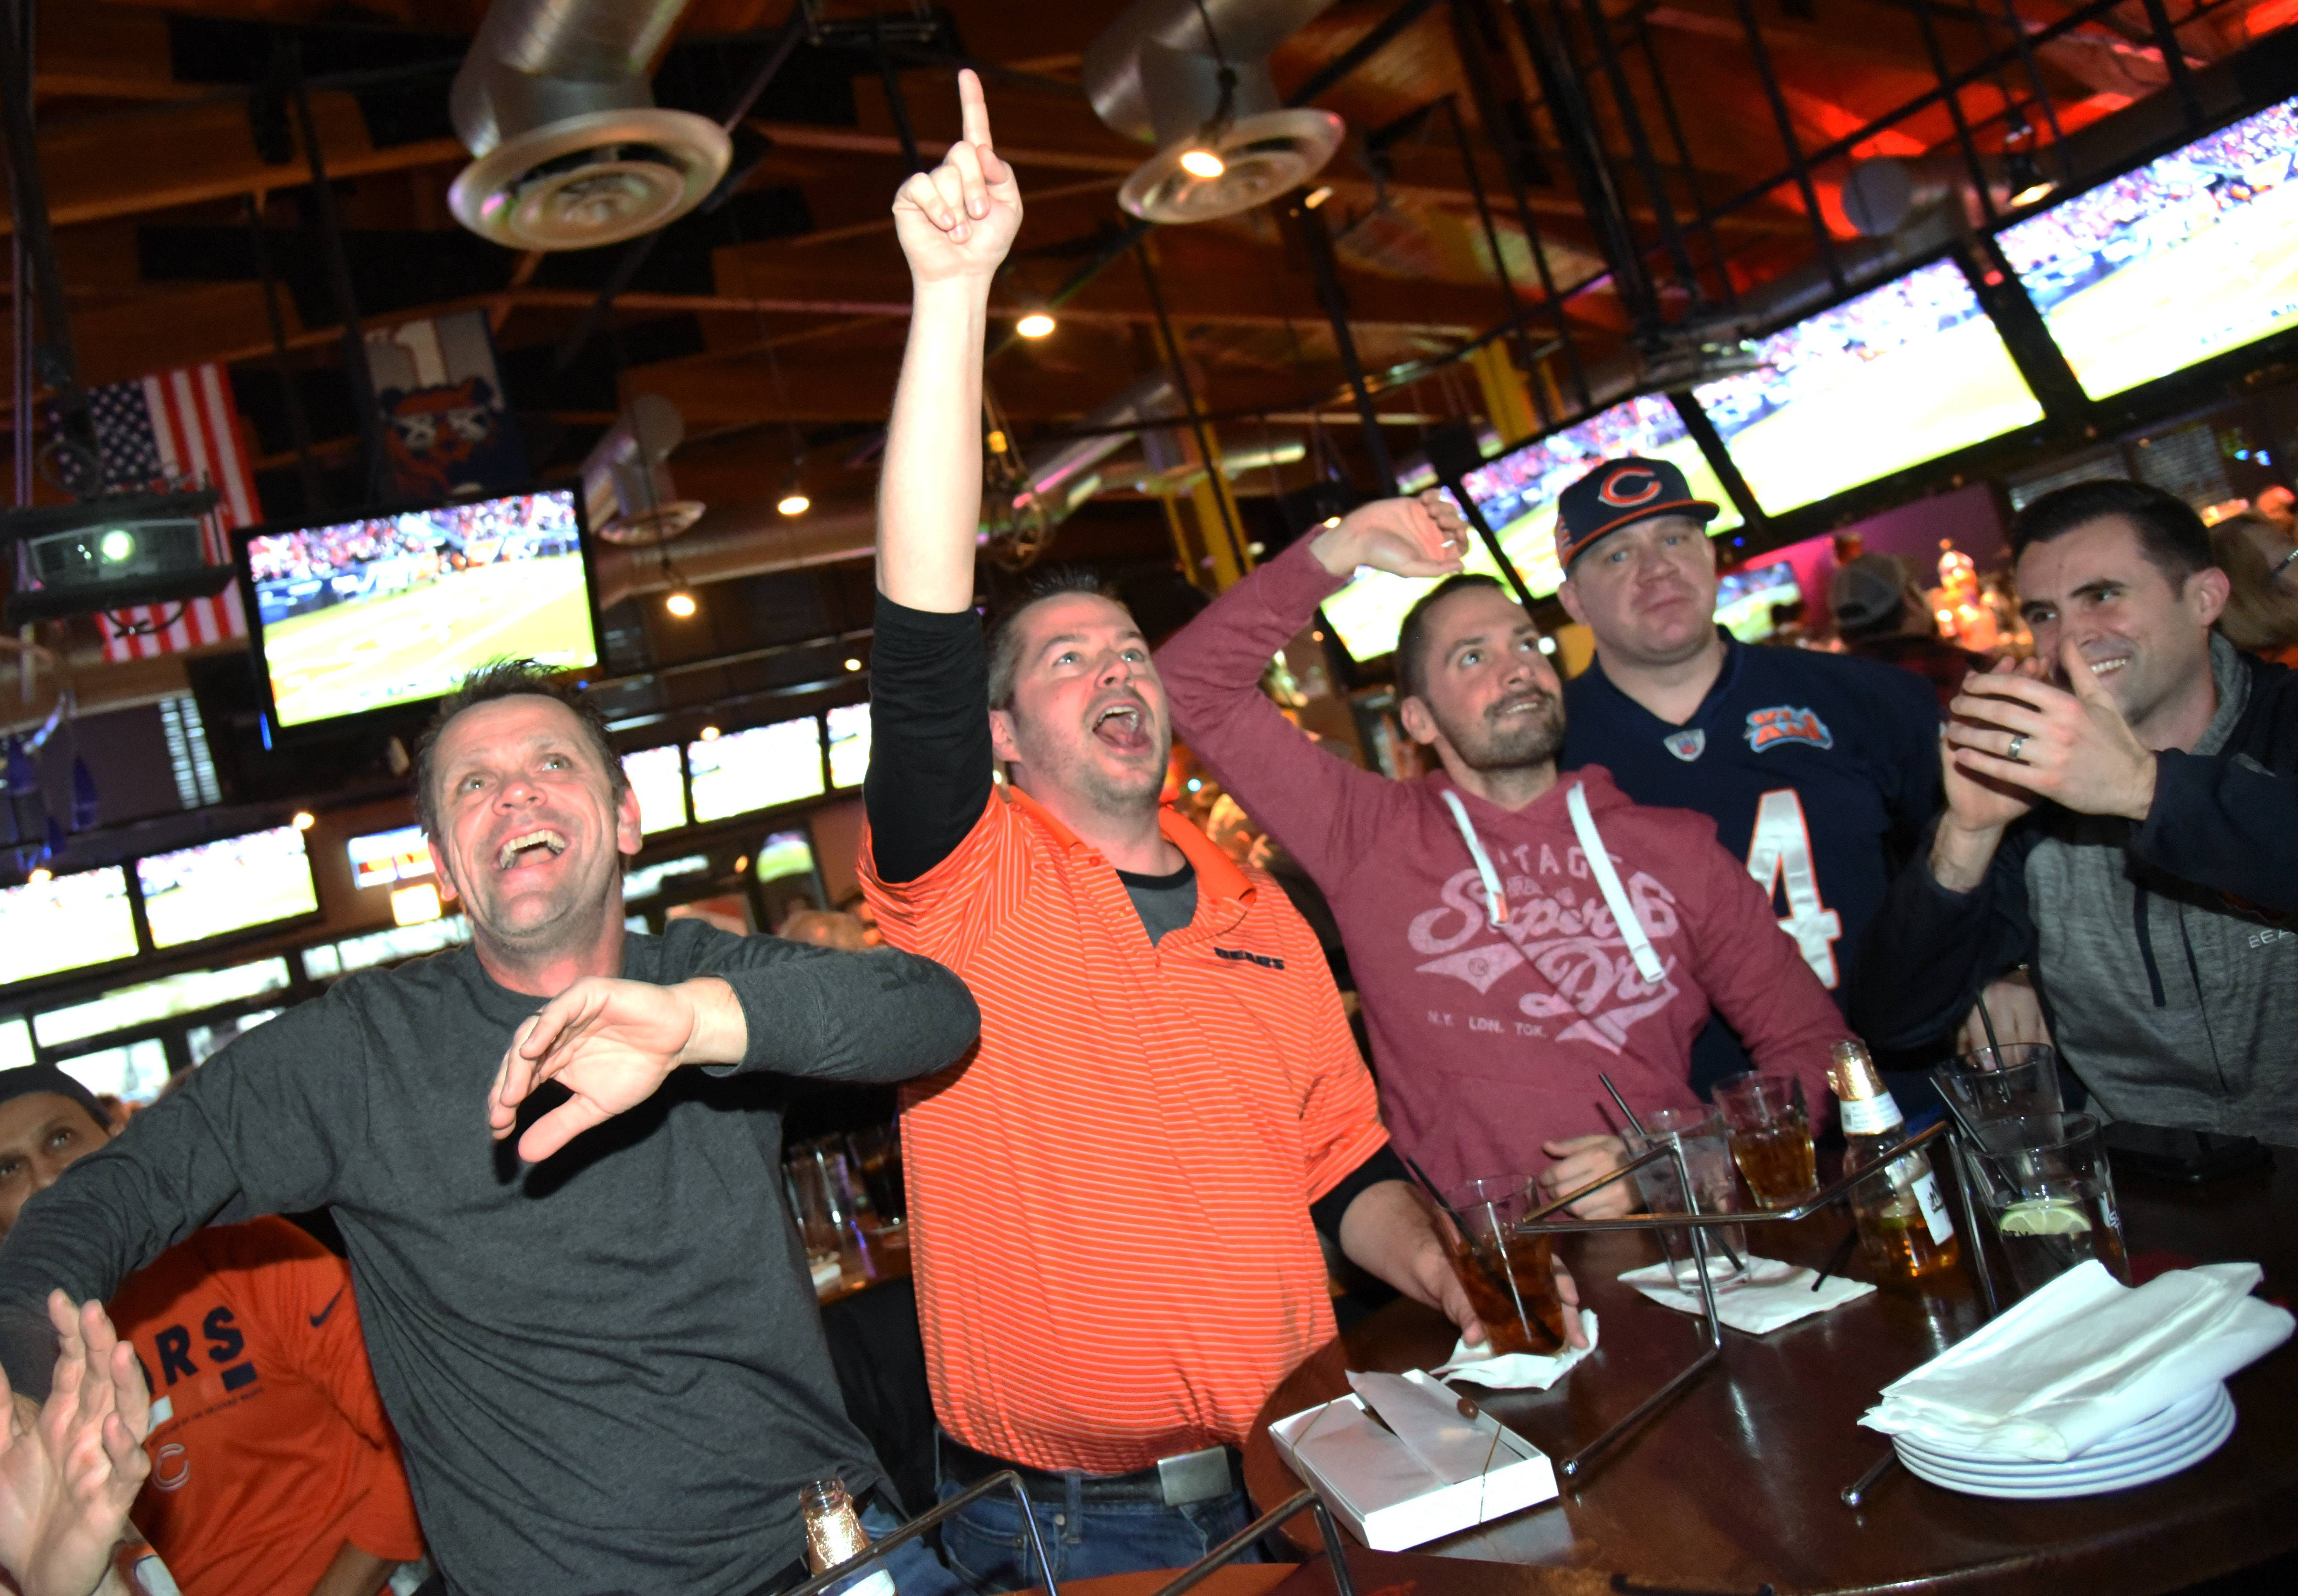 Chicago Bears fans from left Ken Topolski of Elgin, Joe Tomal of Elk Grove Village, Arthur Szczypta of Chicago, Al Wdowiak of Chicago and David Smreczak of Naperville react to a play early during Sunday's game against the Eagles while watching at Real Time Sports Bar in Elk Grove Village.